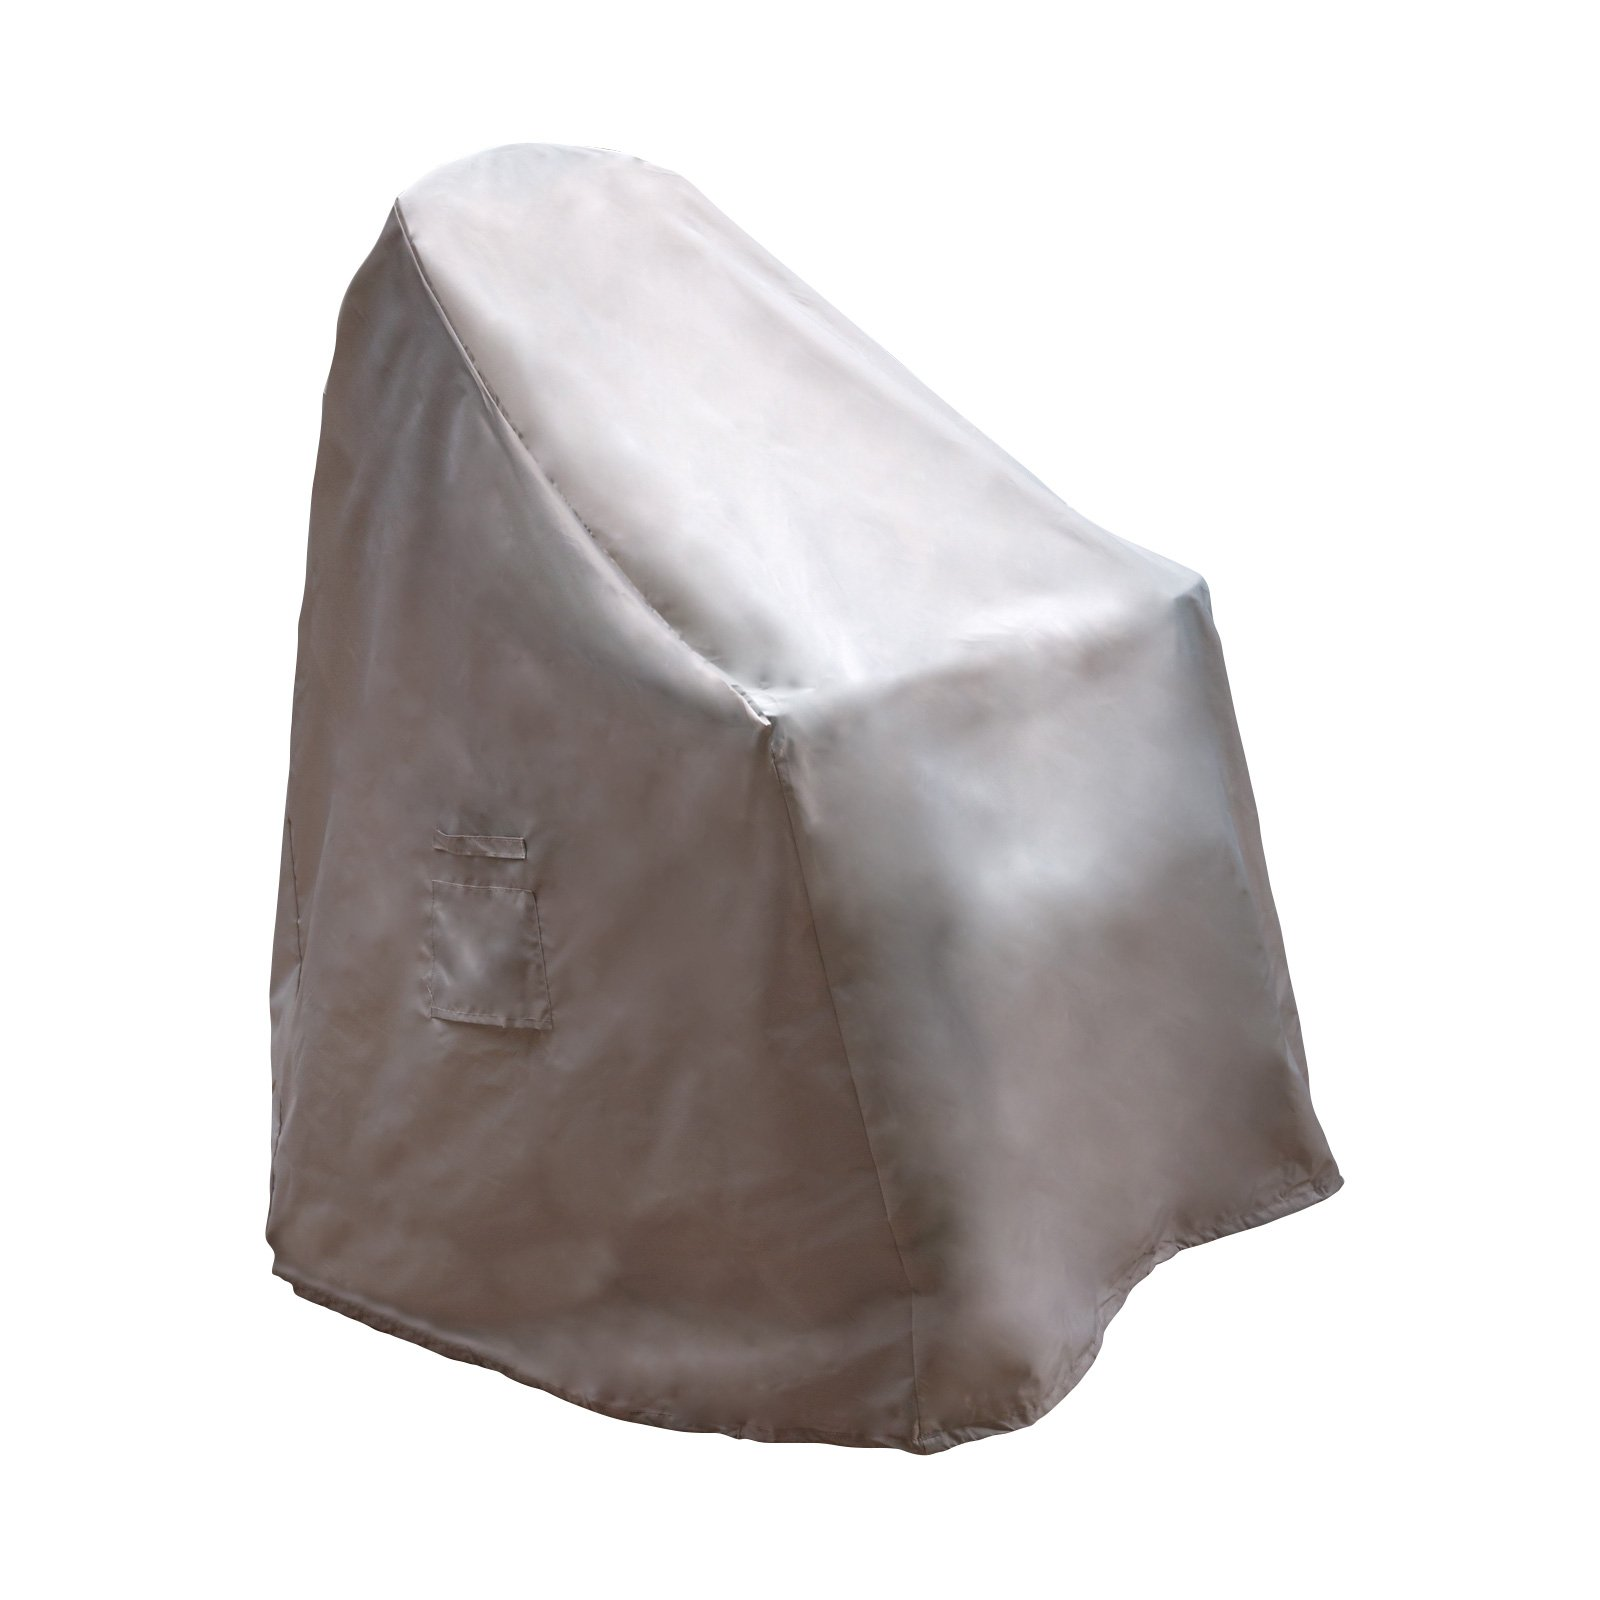 Reusable Revolution Stackable Chair Cover - Water Resistant Outdoor Patio Furniture Cover (Light Grey)